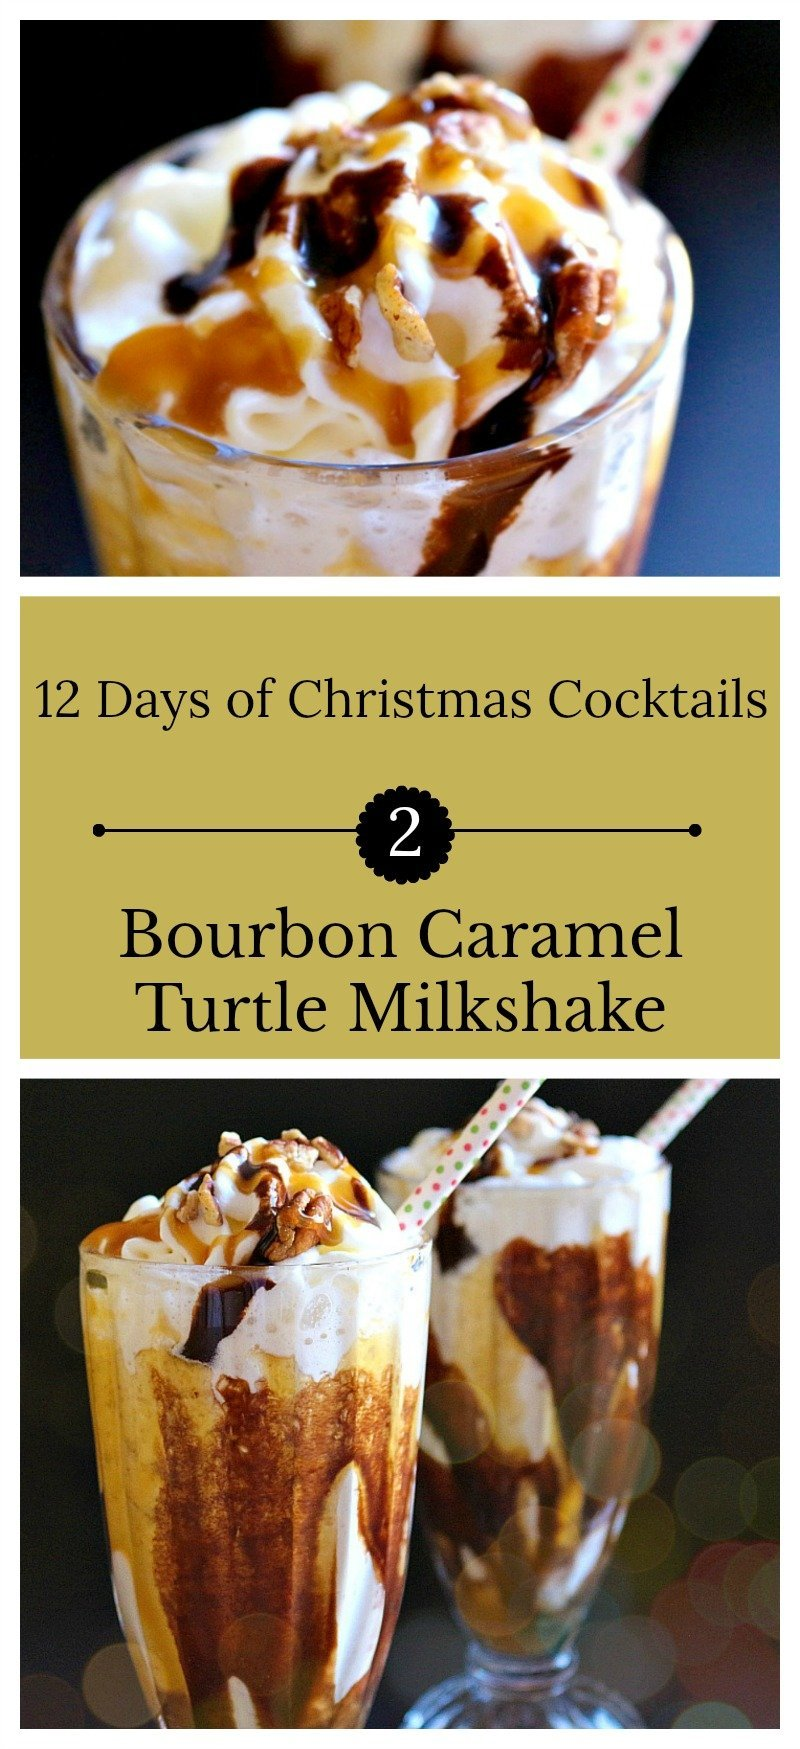 Day 2 of the Twelve Days of Christmas Cocktails, a boozy Bourbon Caramel Turtle Milkshake made with pecan bourbon, butter pecan ice cream, and a blend of liqueurs.